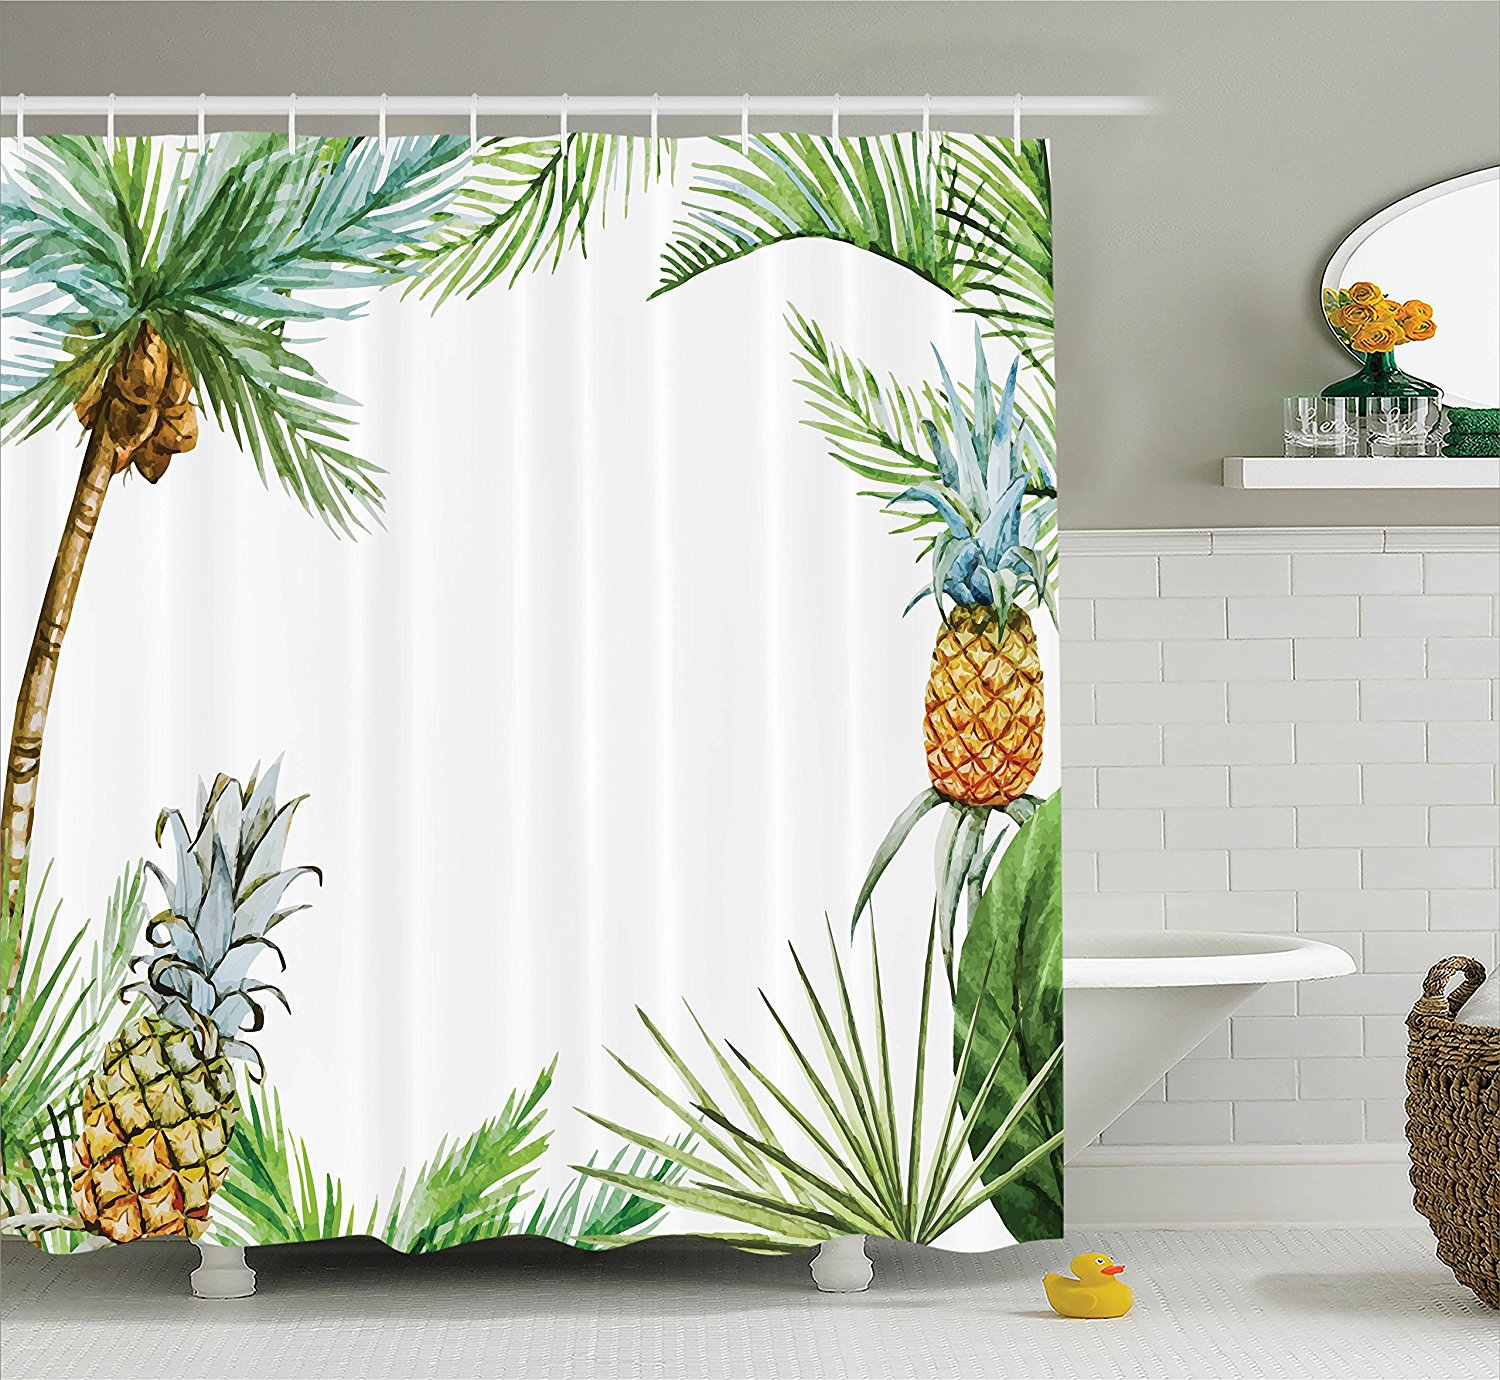 Pineapple Decor Shower Curtain Set Watercolor Tropical Island Style Border Print With Exotic Fruit Palm Trees And Leaves Multi